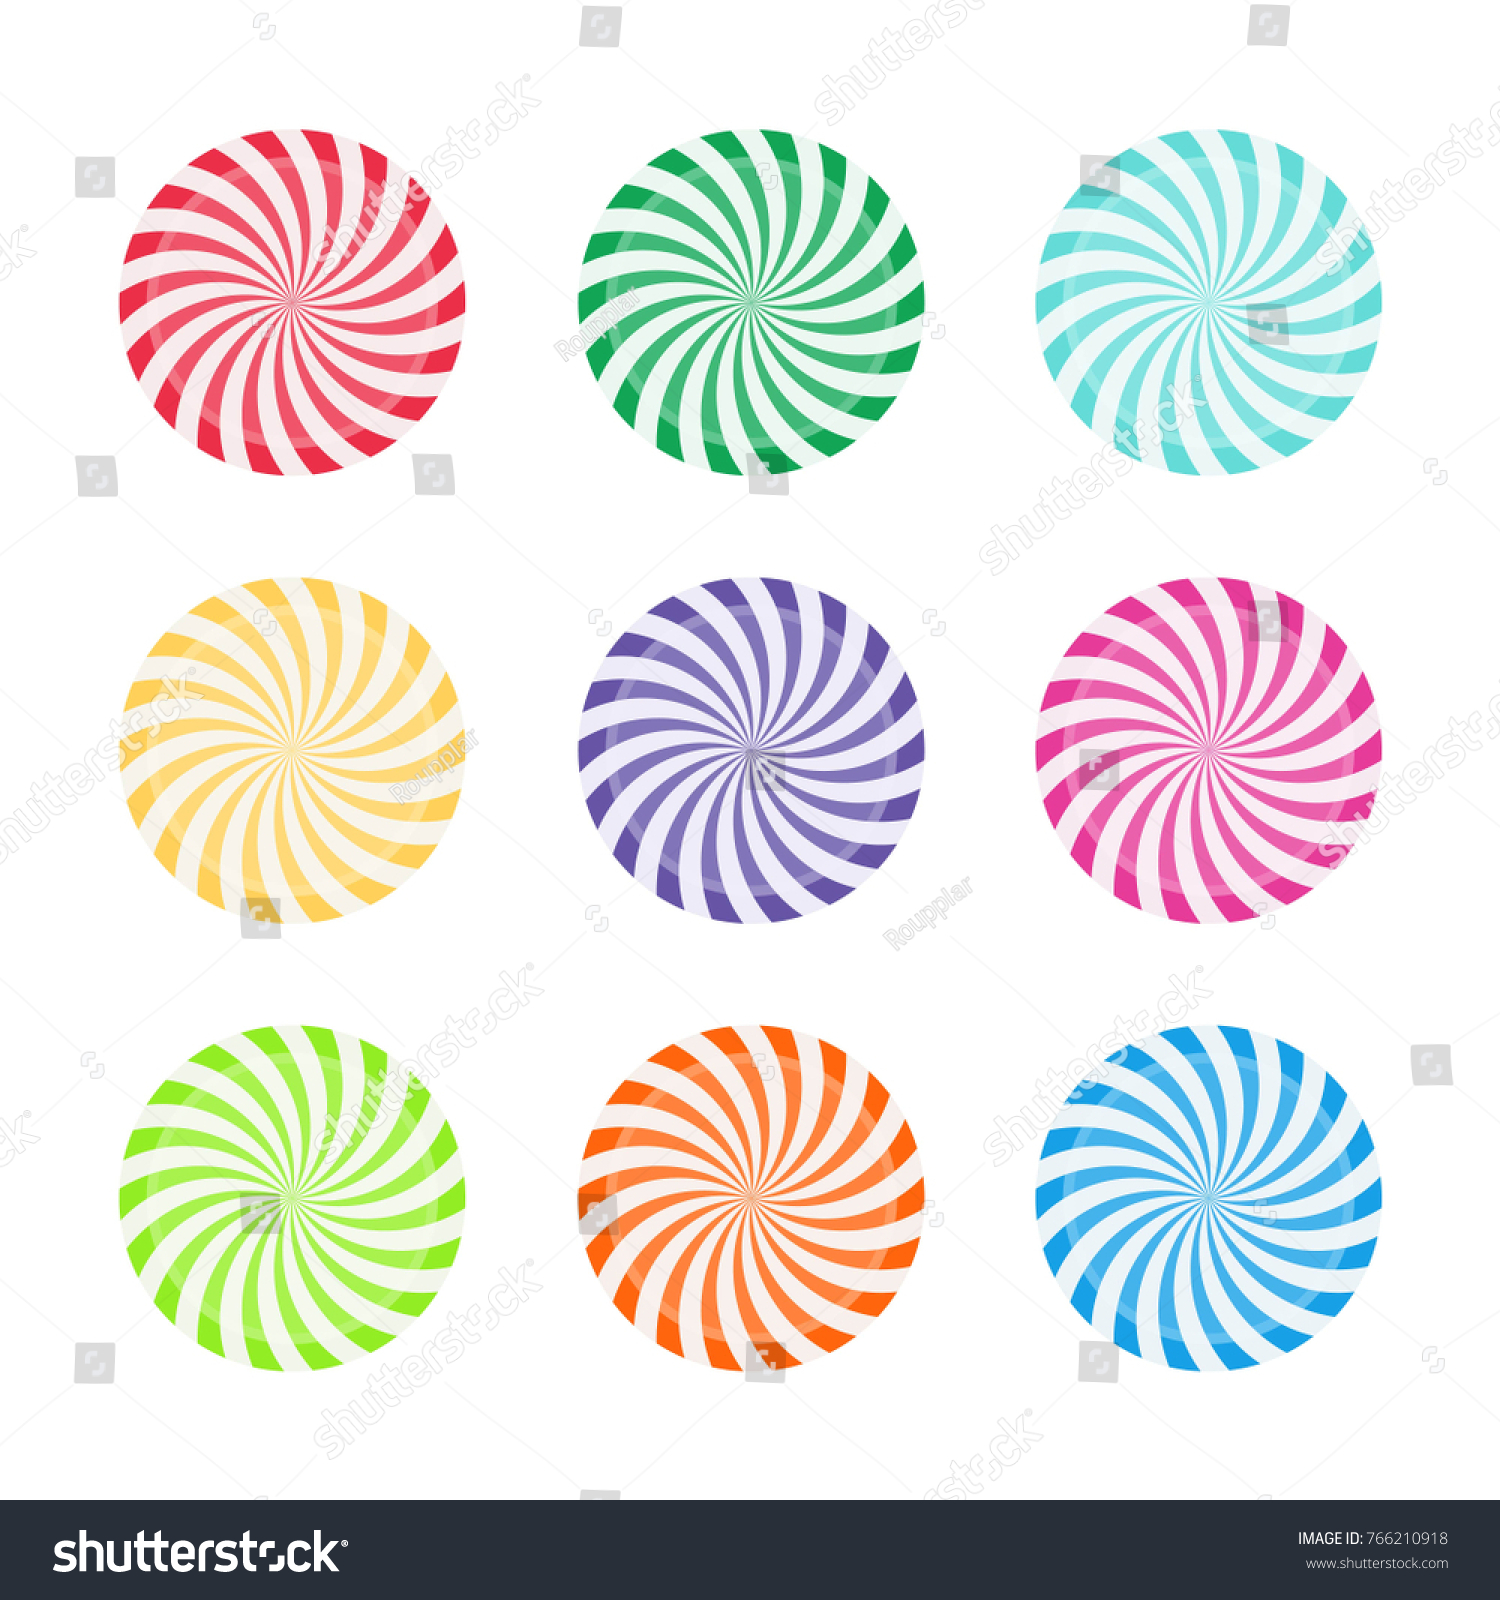 Set Of Colorful Peppermint Candies Round Sweet Lollipop Candy Template Design For Celebration